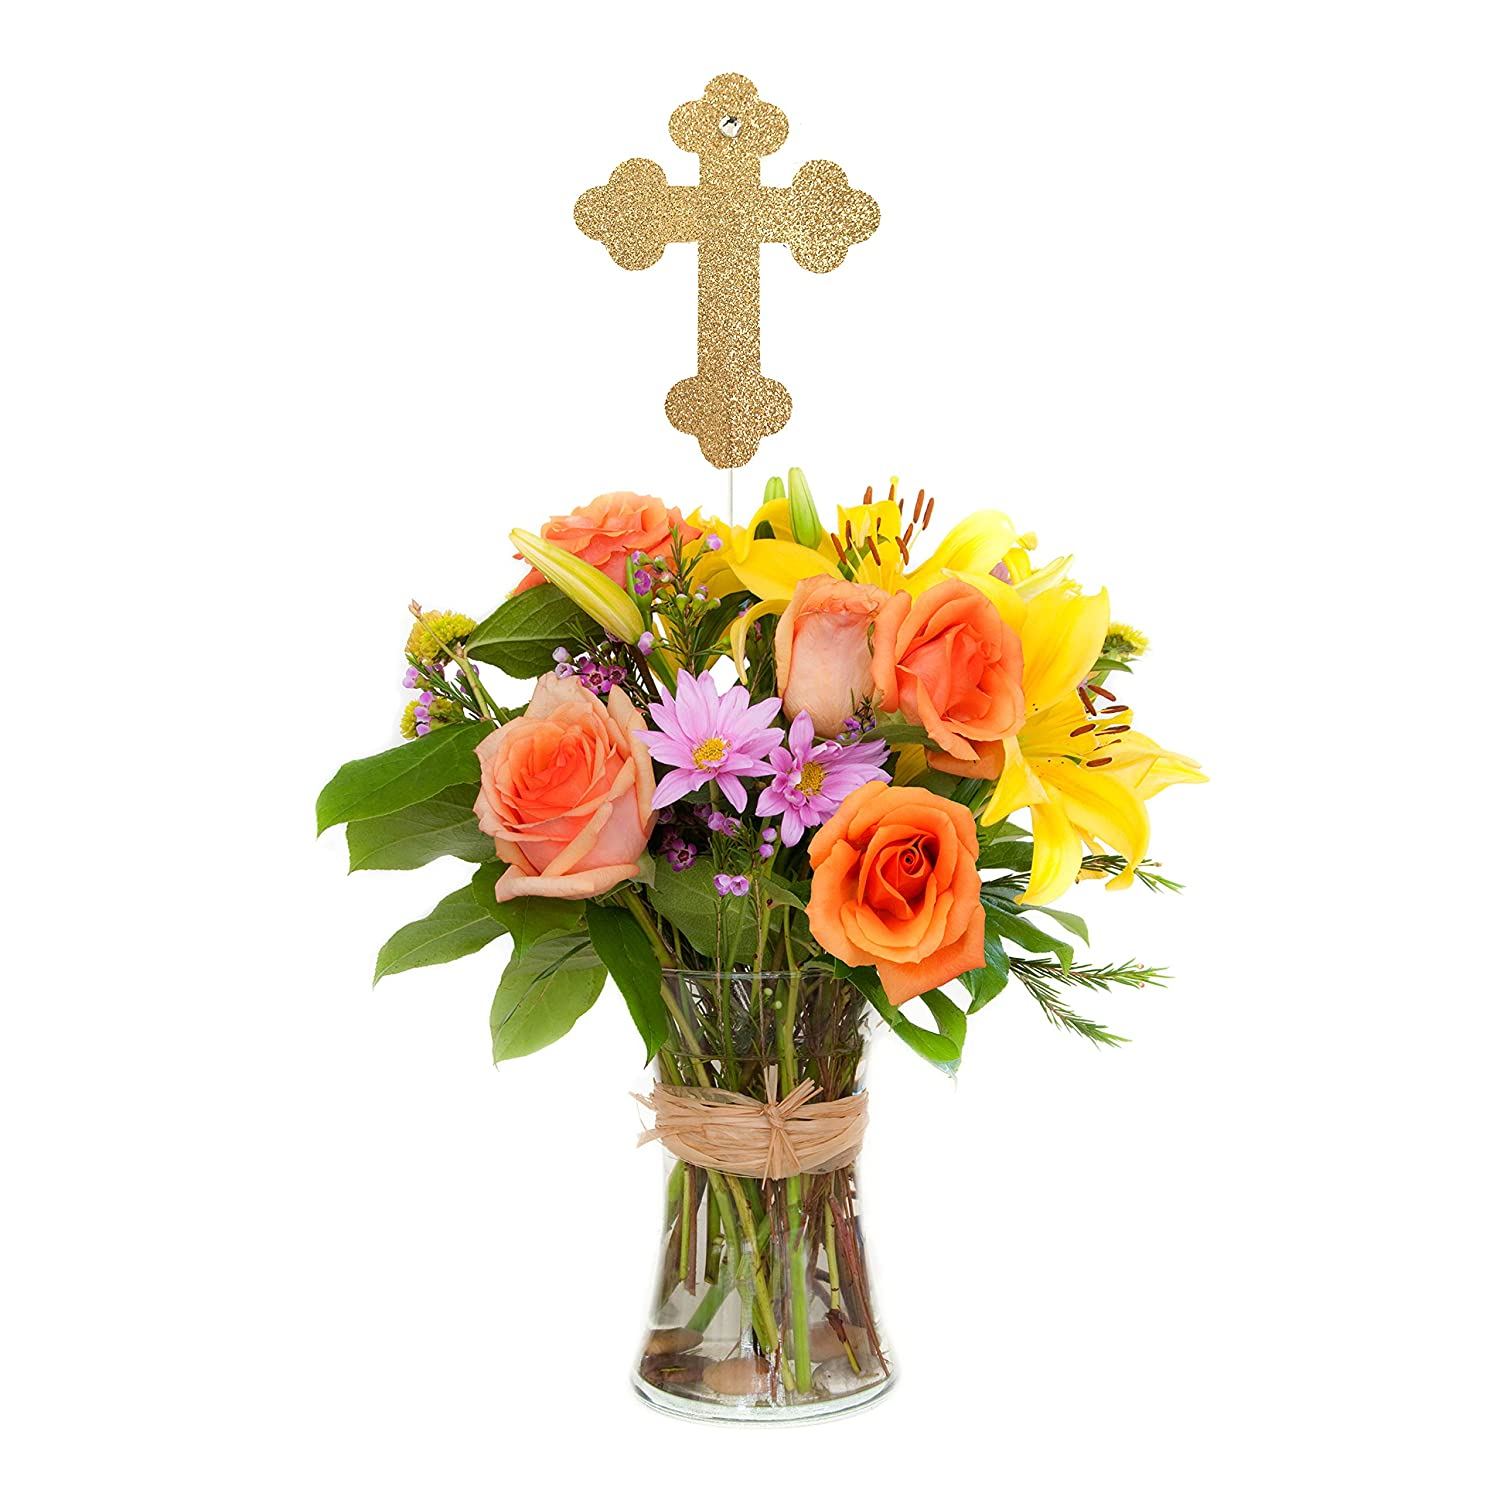 Cross Centerpiece Stick (Set of 3), Baptism Centerpiece Stick, Christening Party Decorations